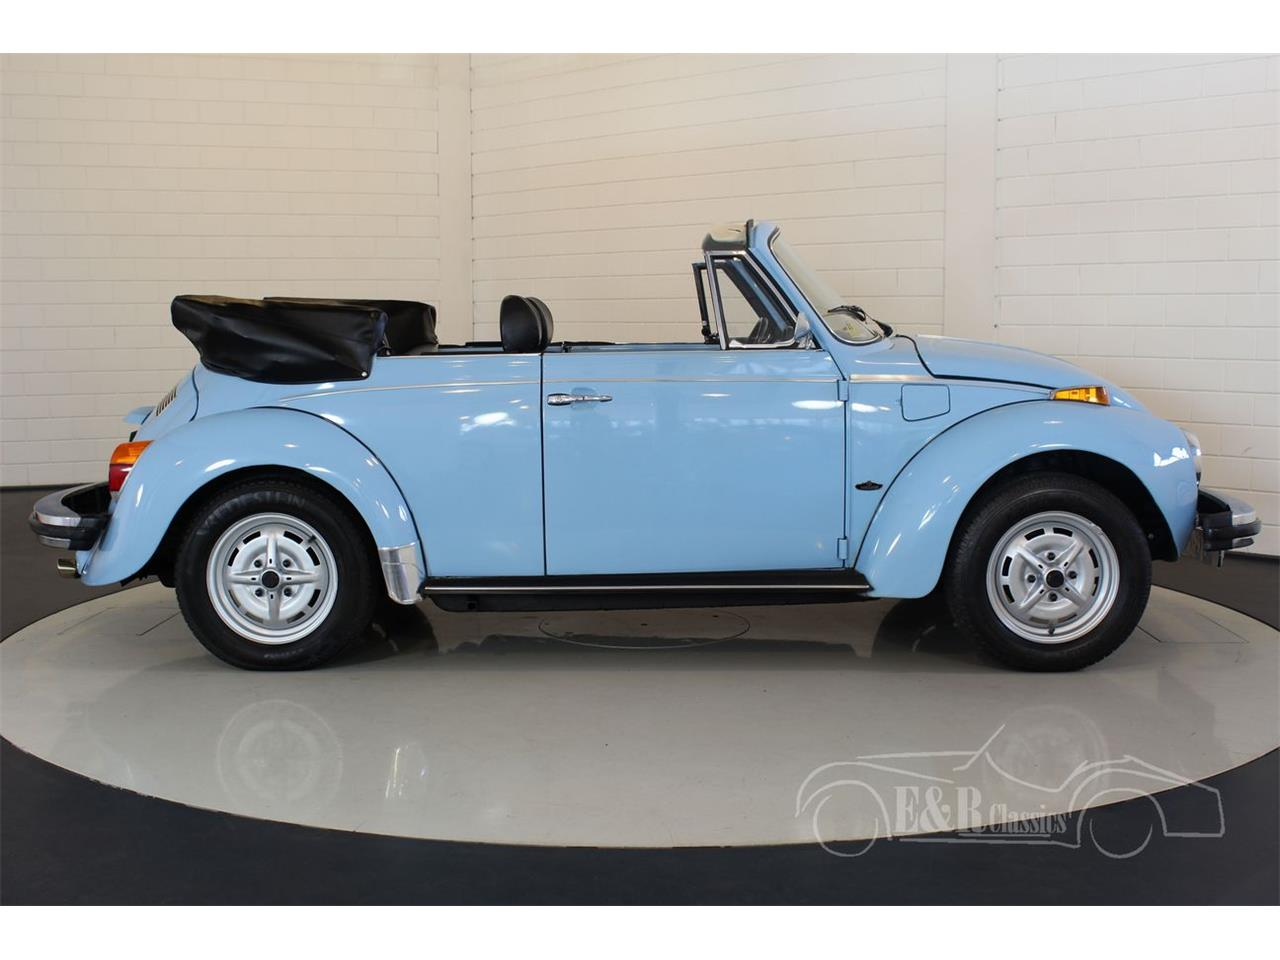 Large Picture of '79 Volkswagen Beetle Offered by E & R Classics - N8EB